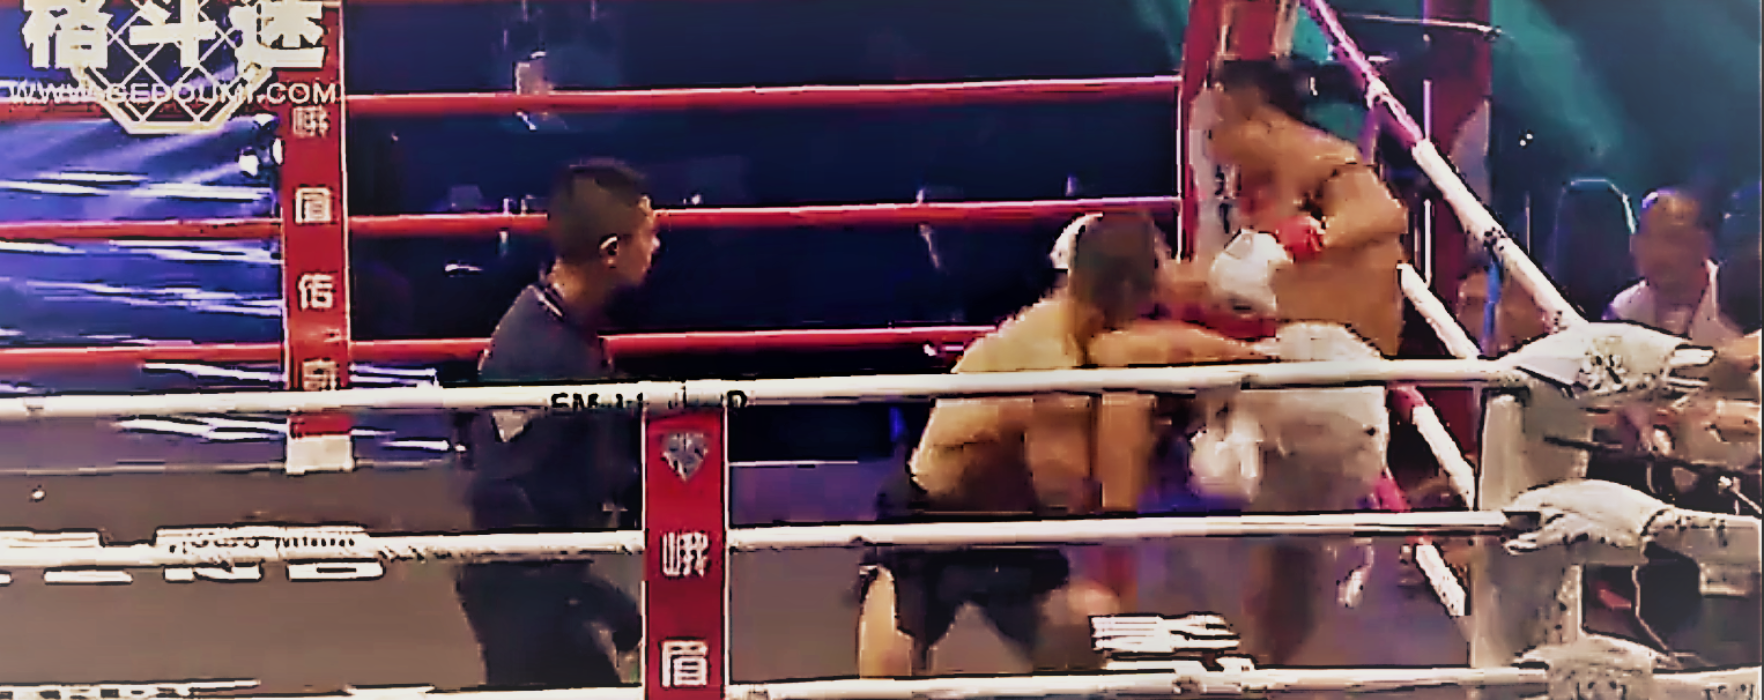 (English) China: Yodwicha won, Izequang KO